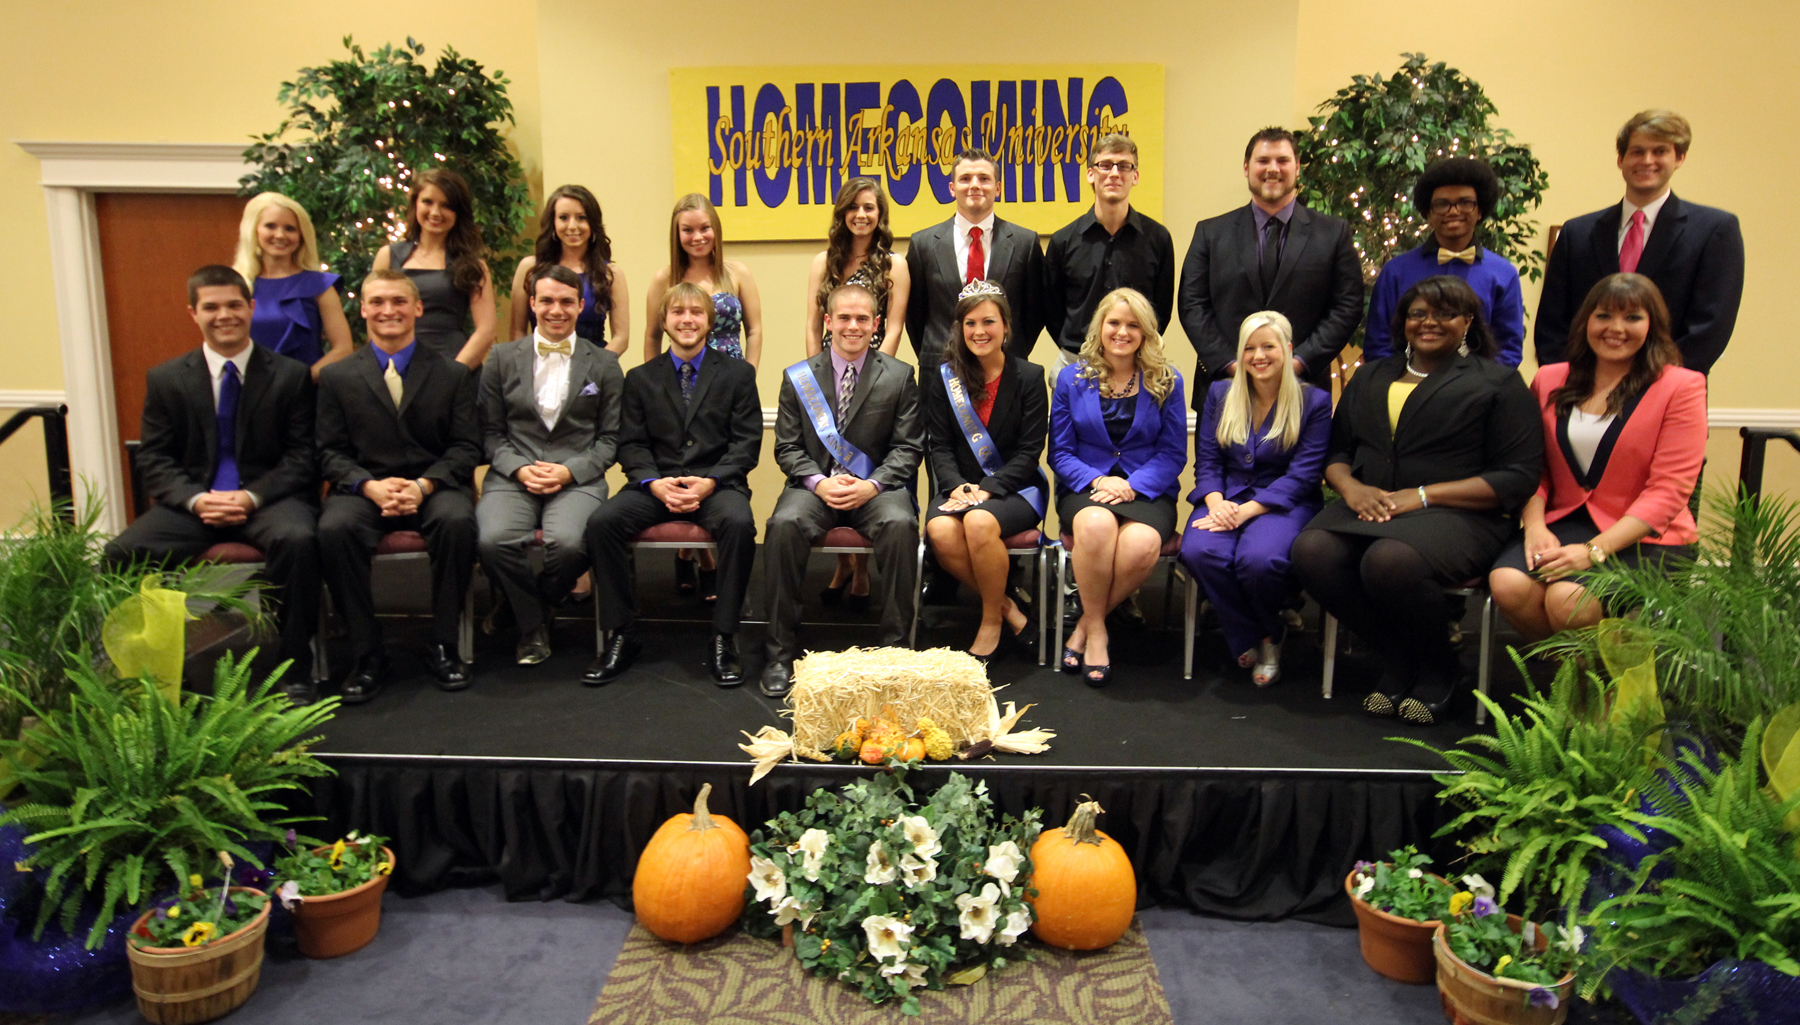 1383666425 sau 20homecoming 20court 202013